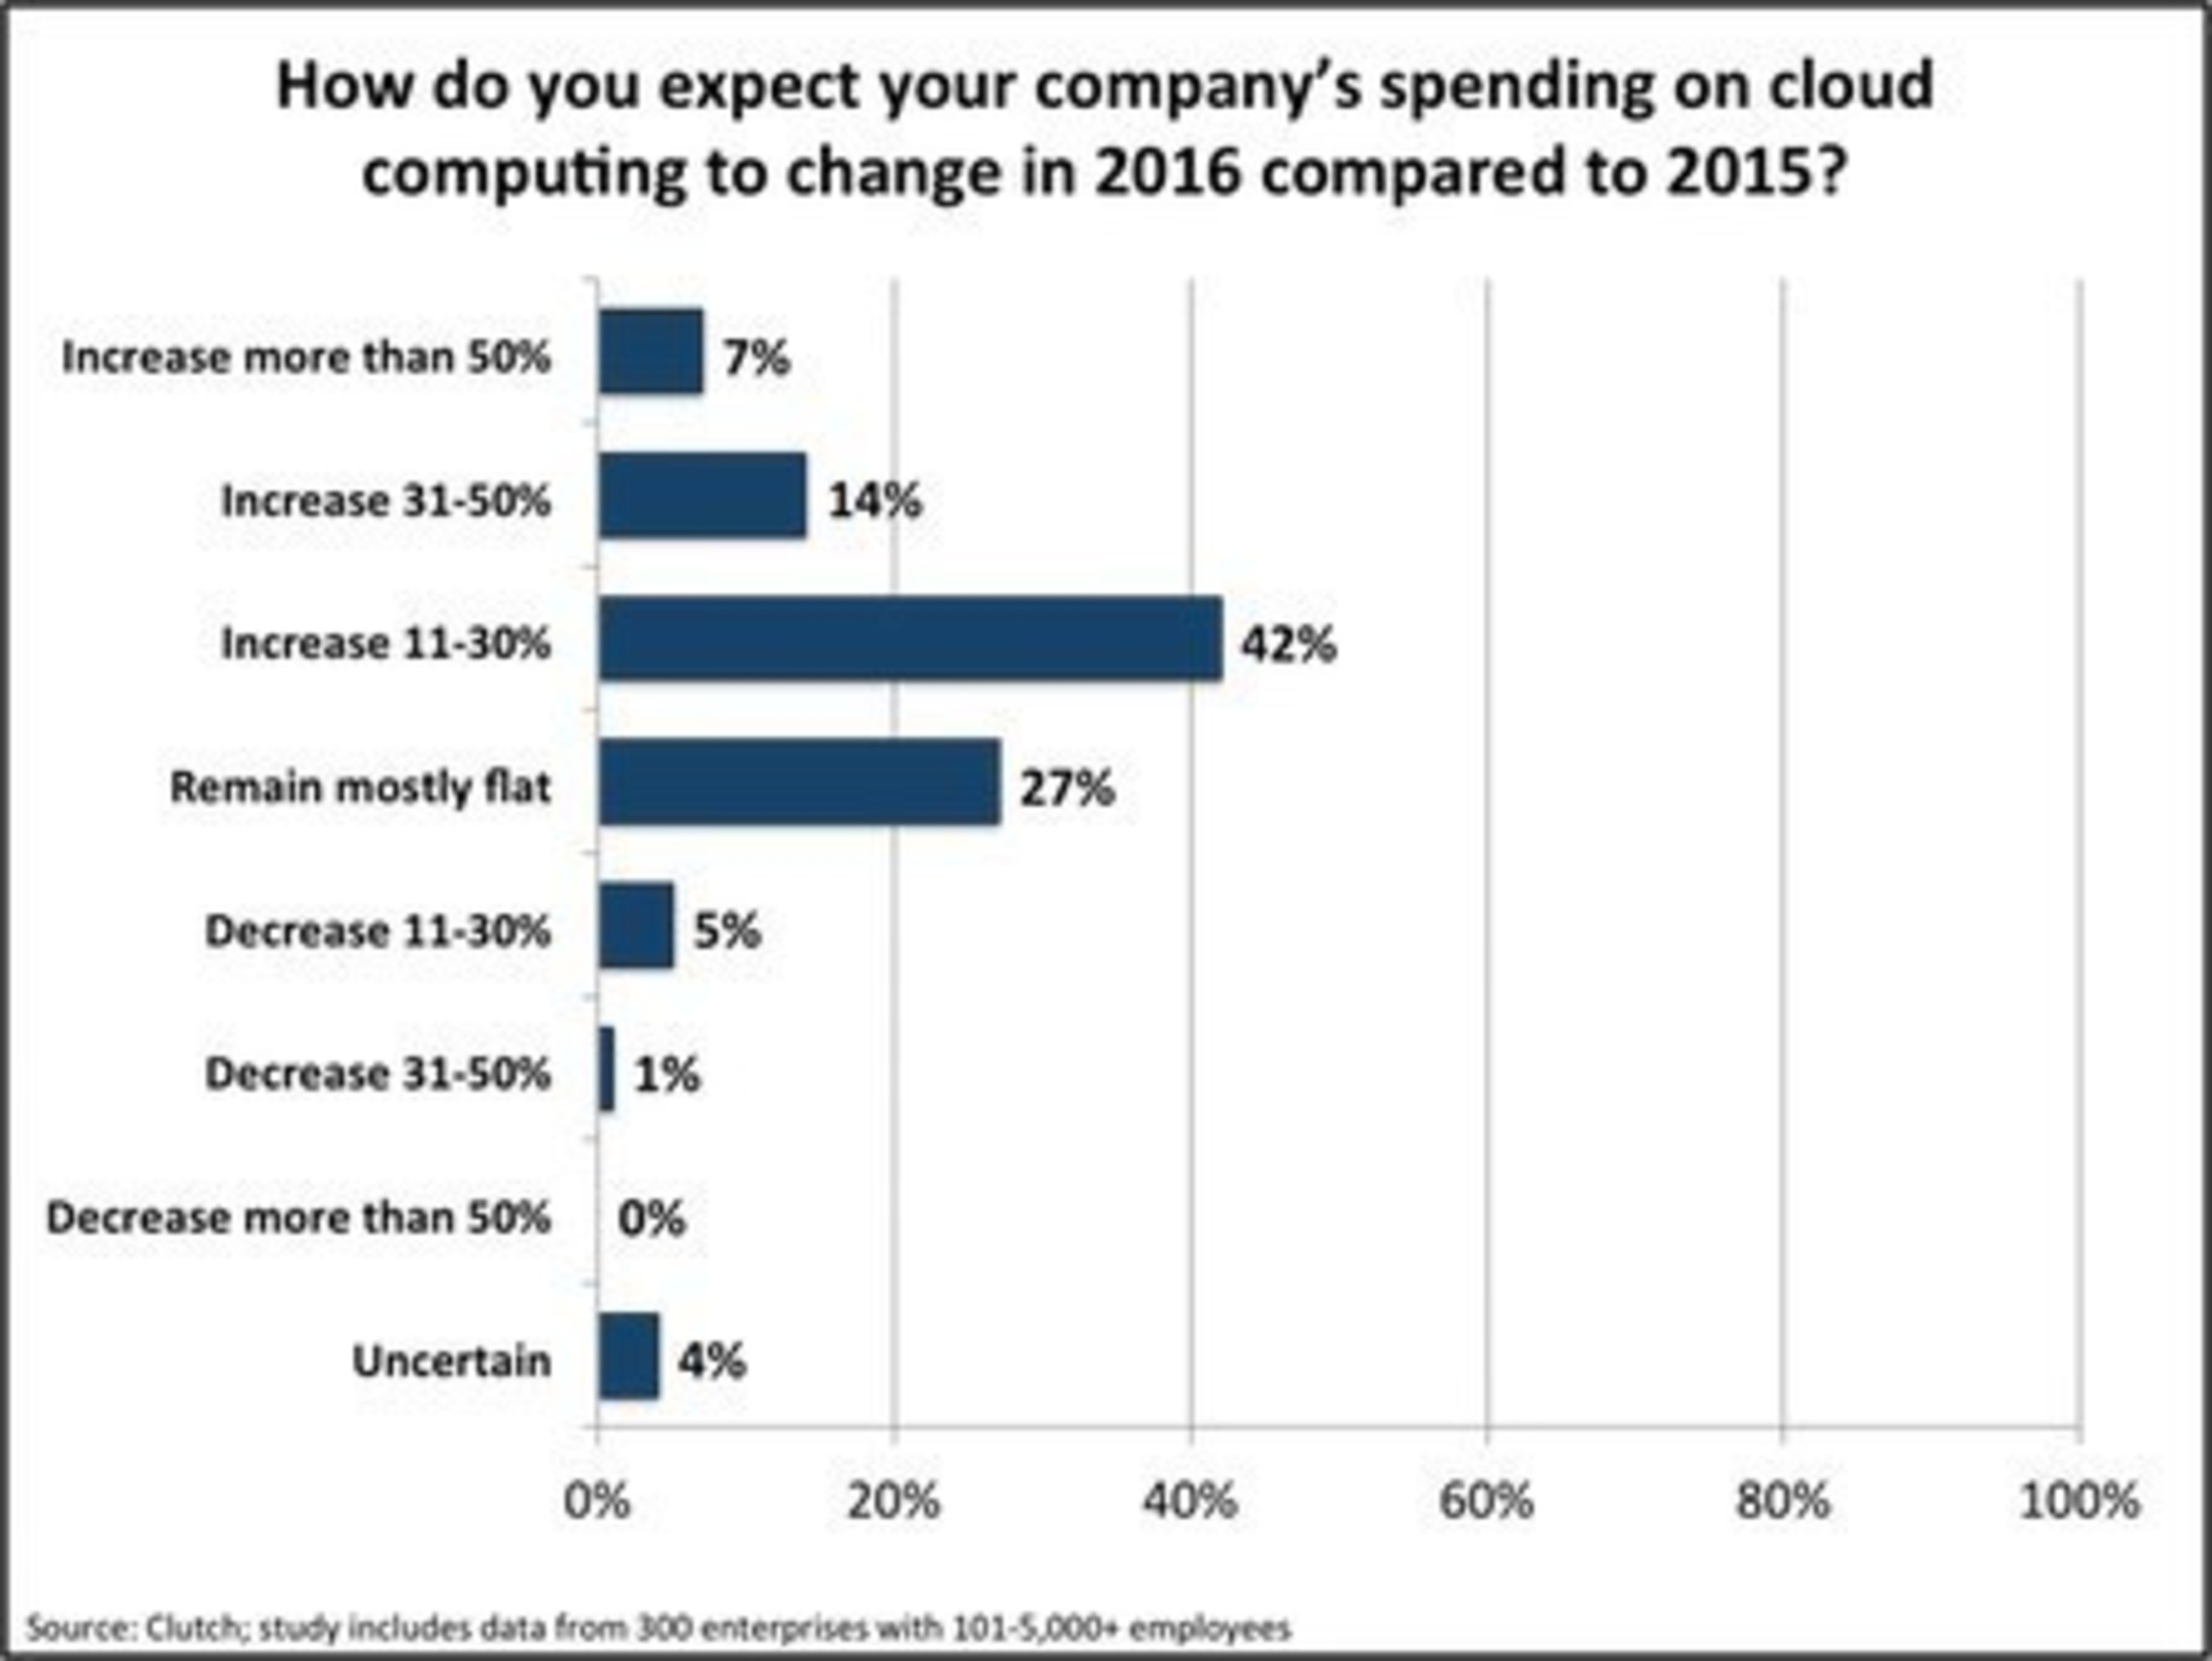 90% of Enterprises Plan to Increase or Maintain Annual Spend on Cloud Computing in 2016